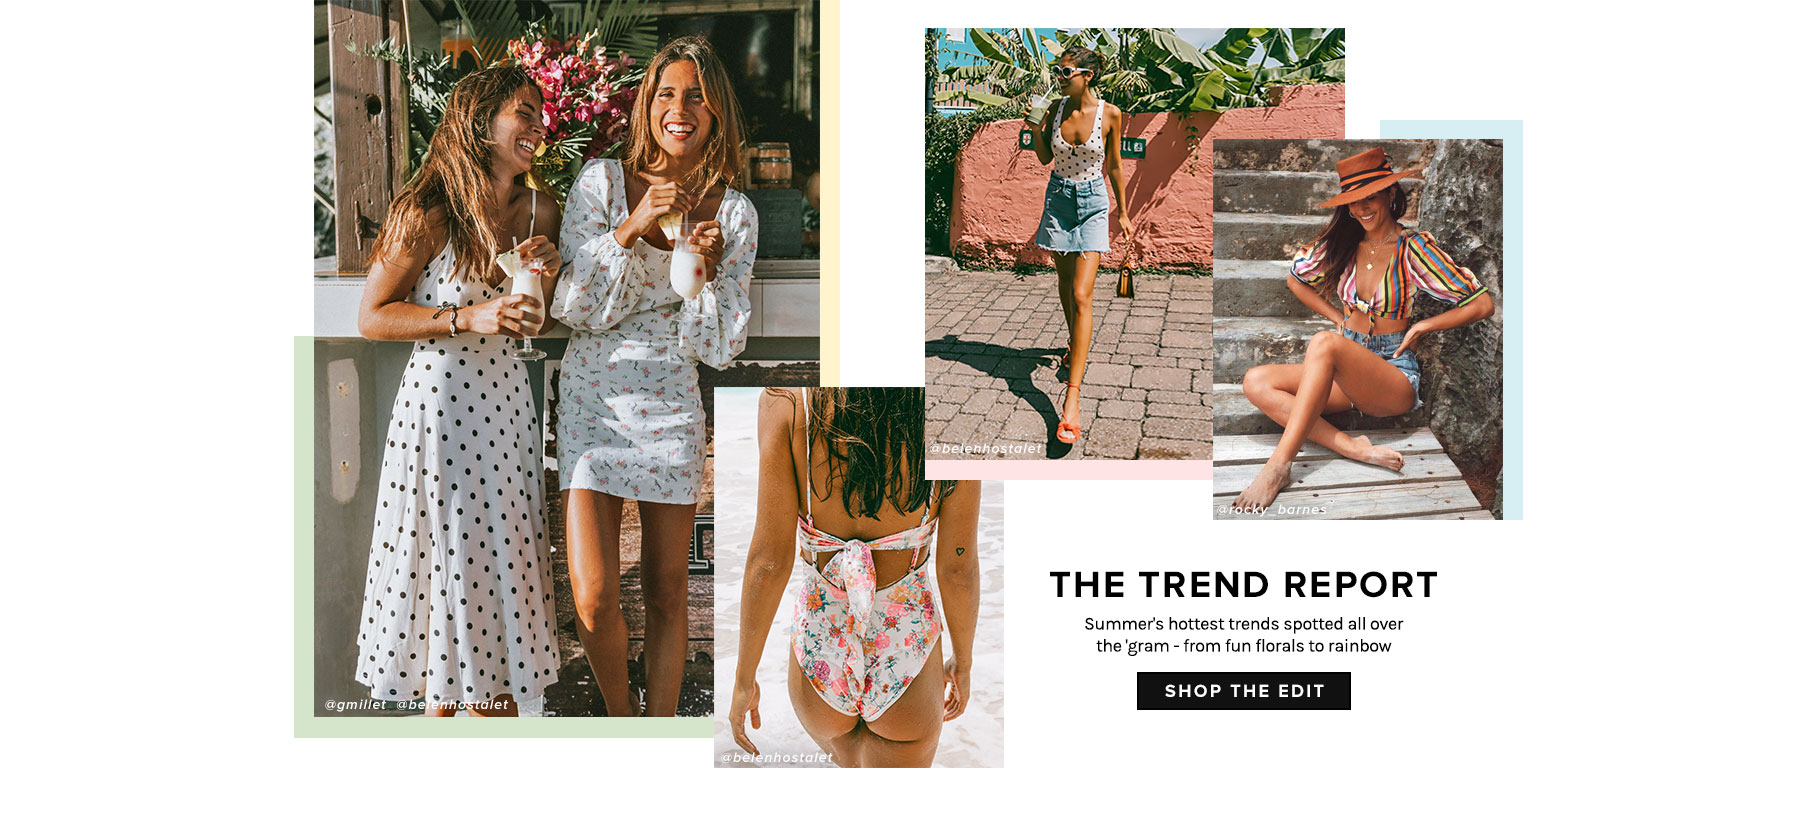 The Trend Report. Summer's hottest trends spotted all over the 'gram - from fun florals to rainbow. Shop the edit.